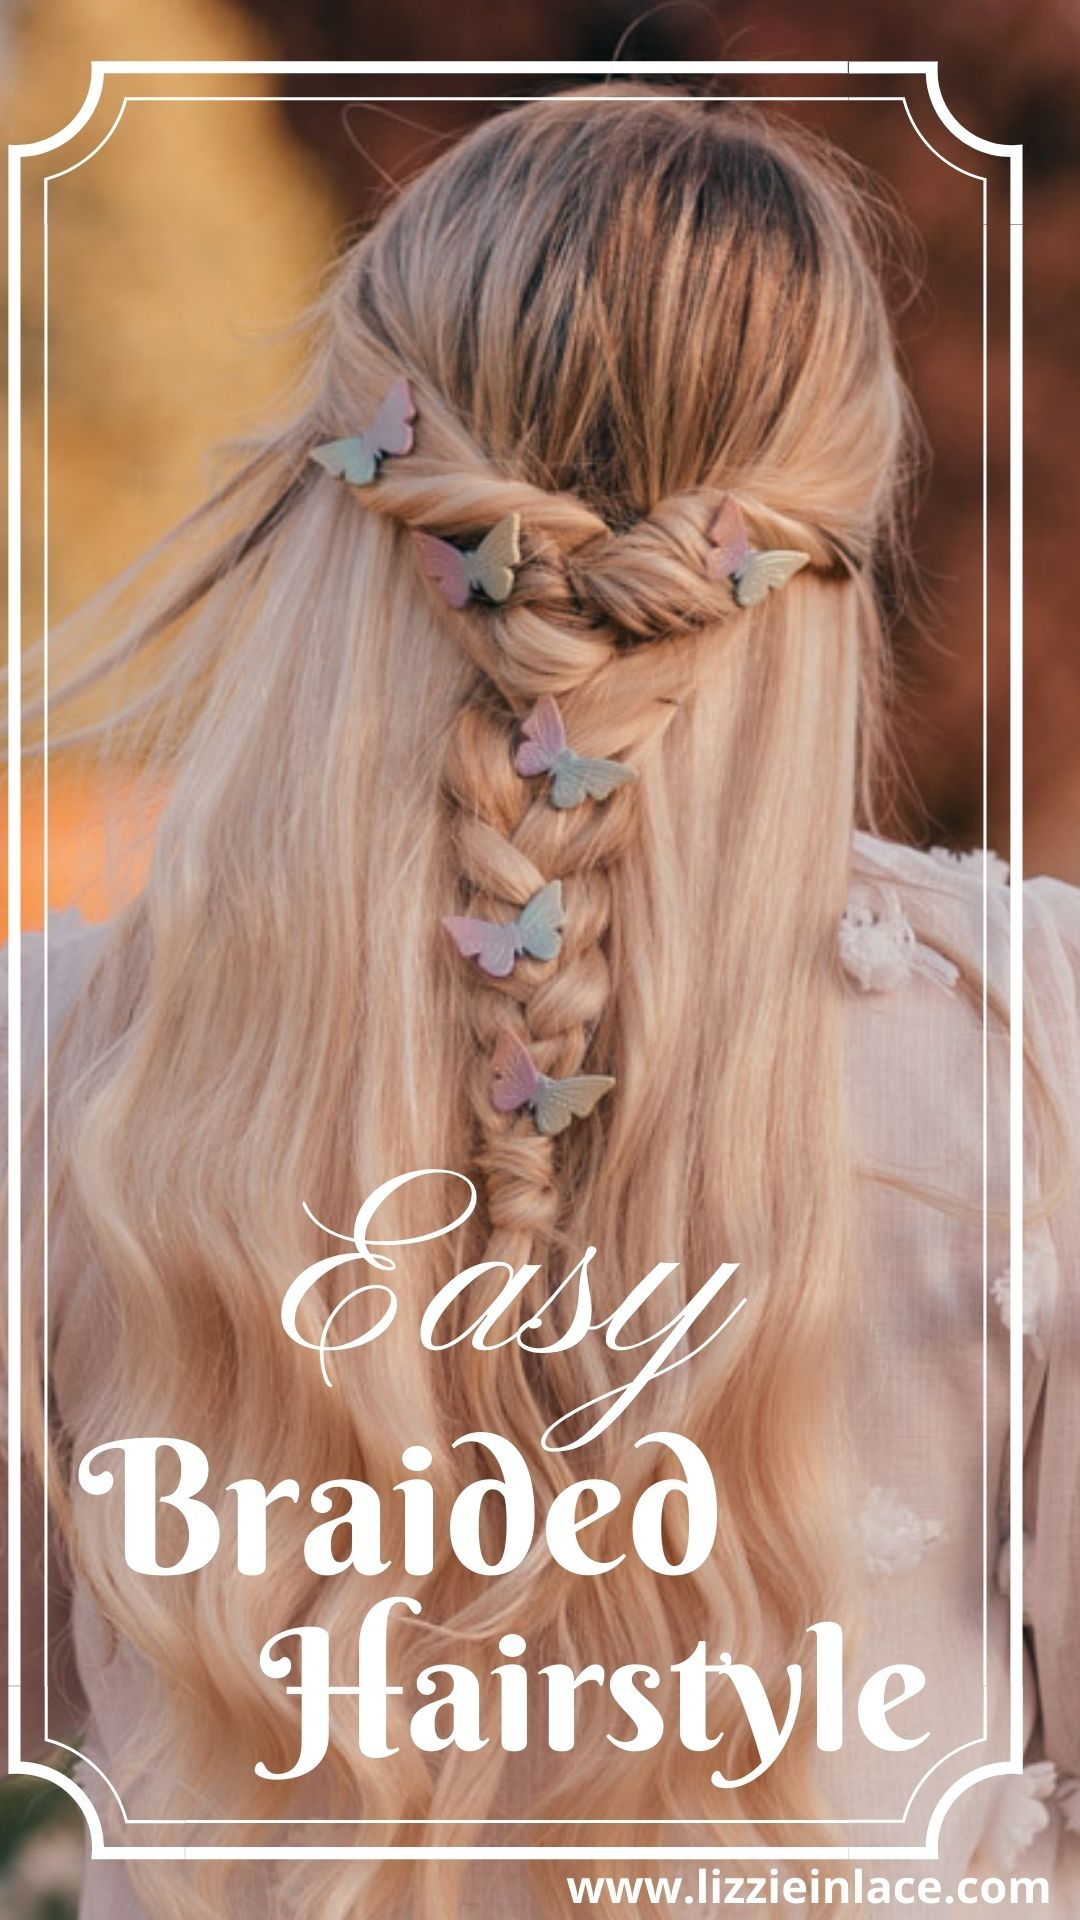 Feminine fashion blogger Elizabeth Hugen of Lizzie in Lace shares a Girly Summer Outfit Idea and a romantic braided hair tutorial with butterfly clips